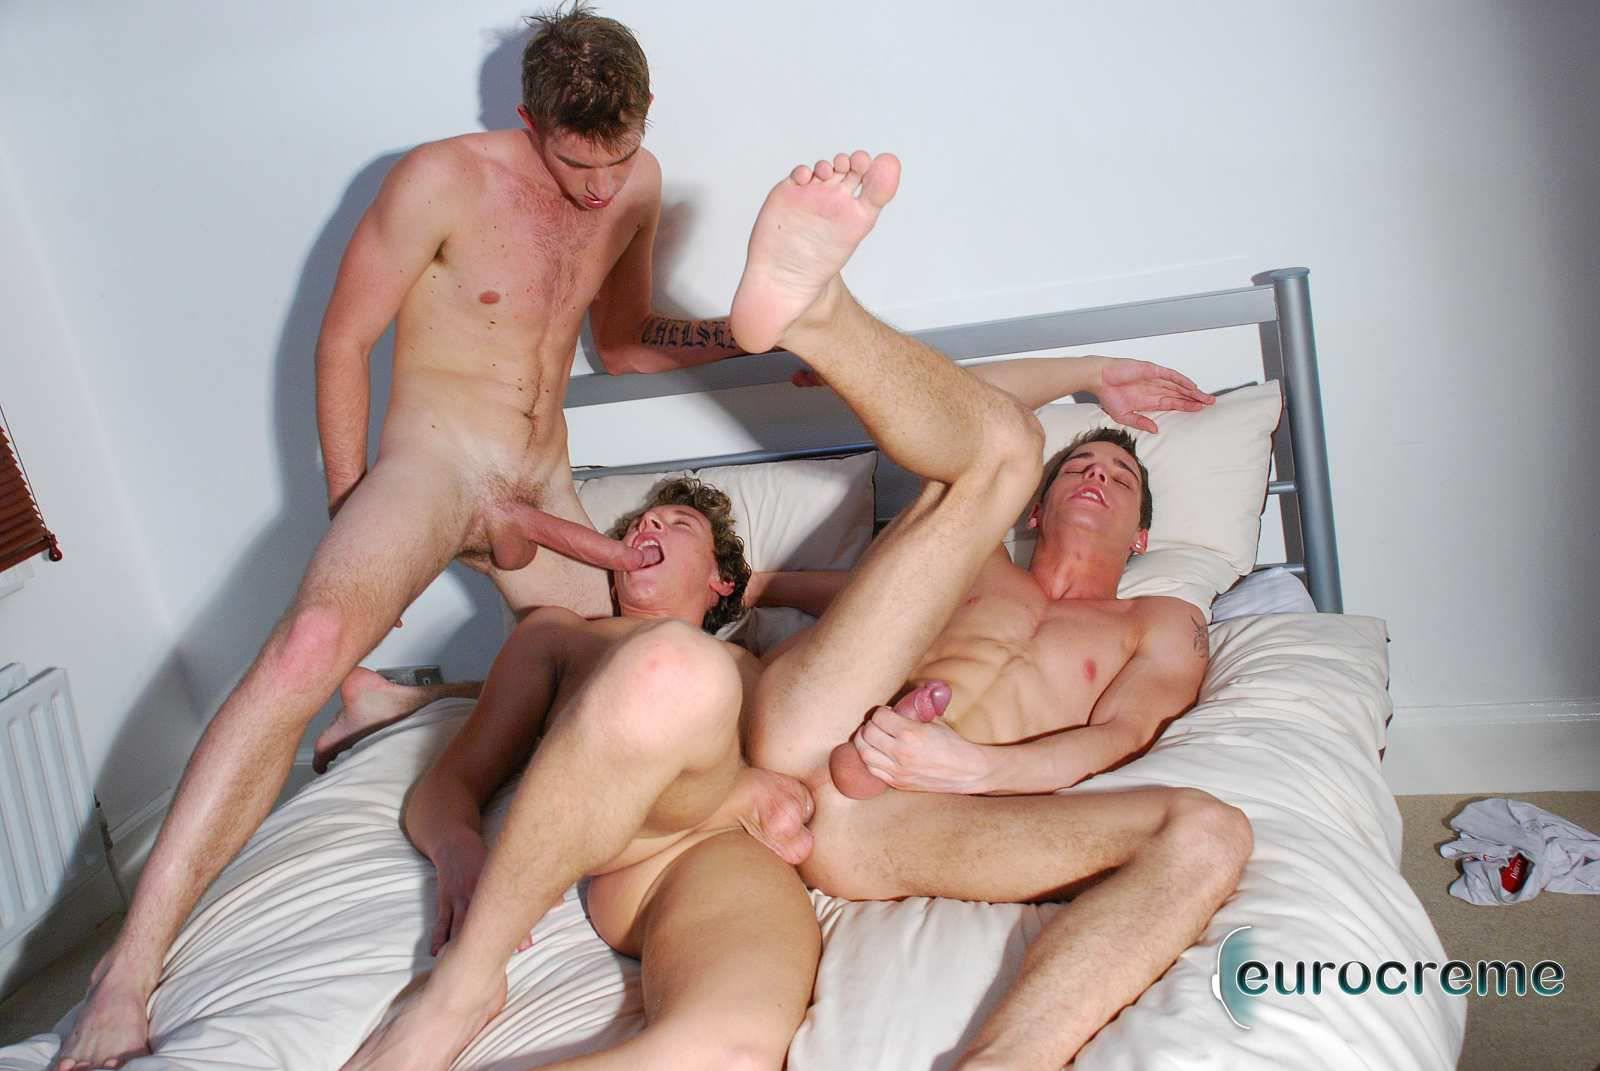 Eurocreme Matt Hughes and Alex Stevens and Philipe Delvaux Twinks Fucking Amateur Gay Porn 16 Matt Hughes Uses His 11 Inch Uncut Cock On Two Tricks